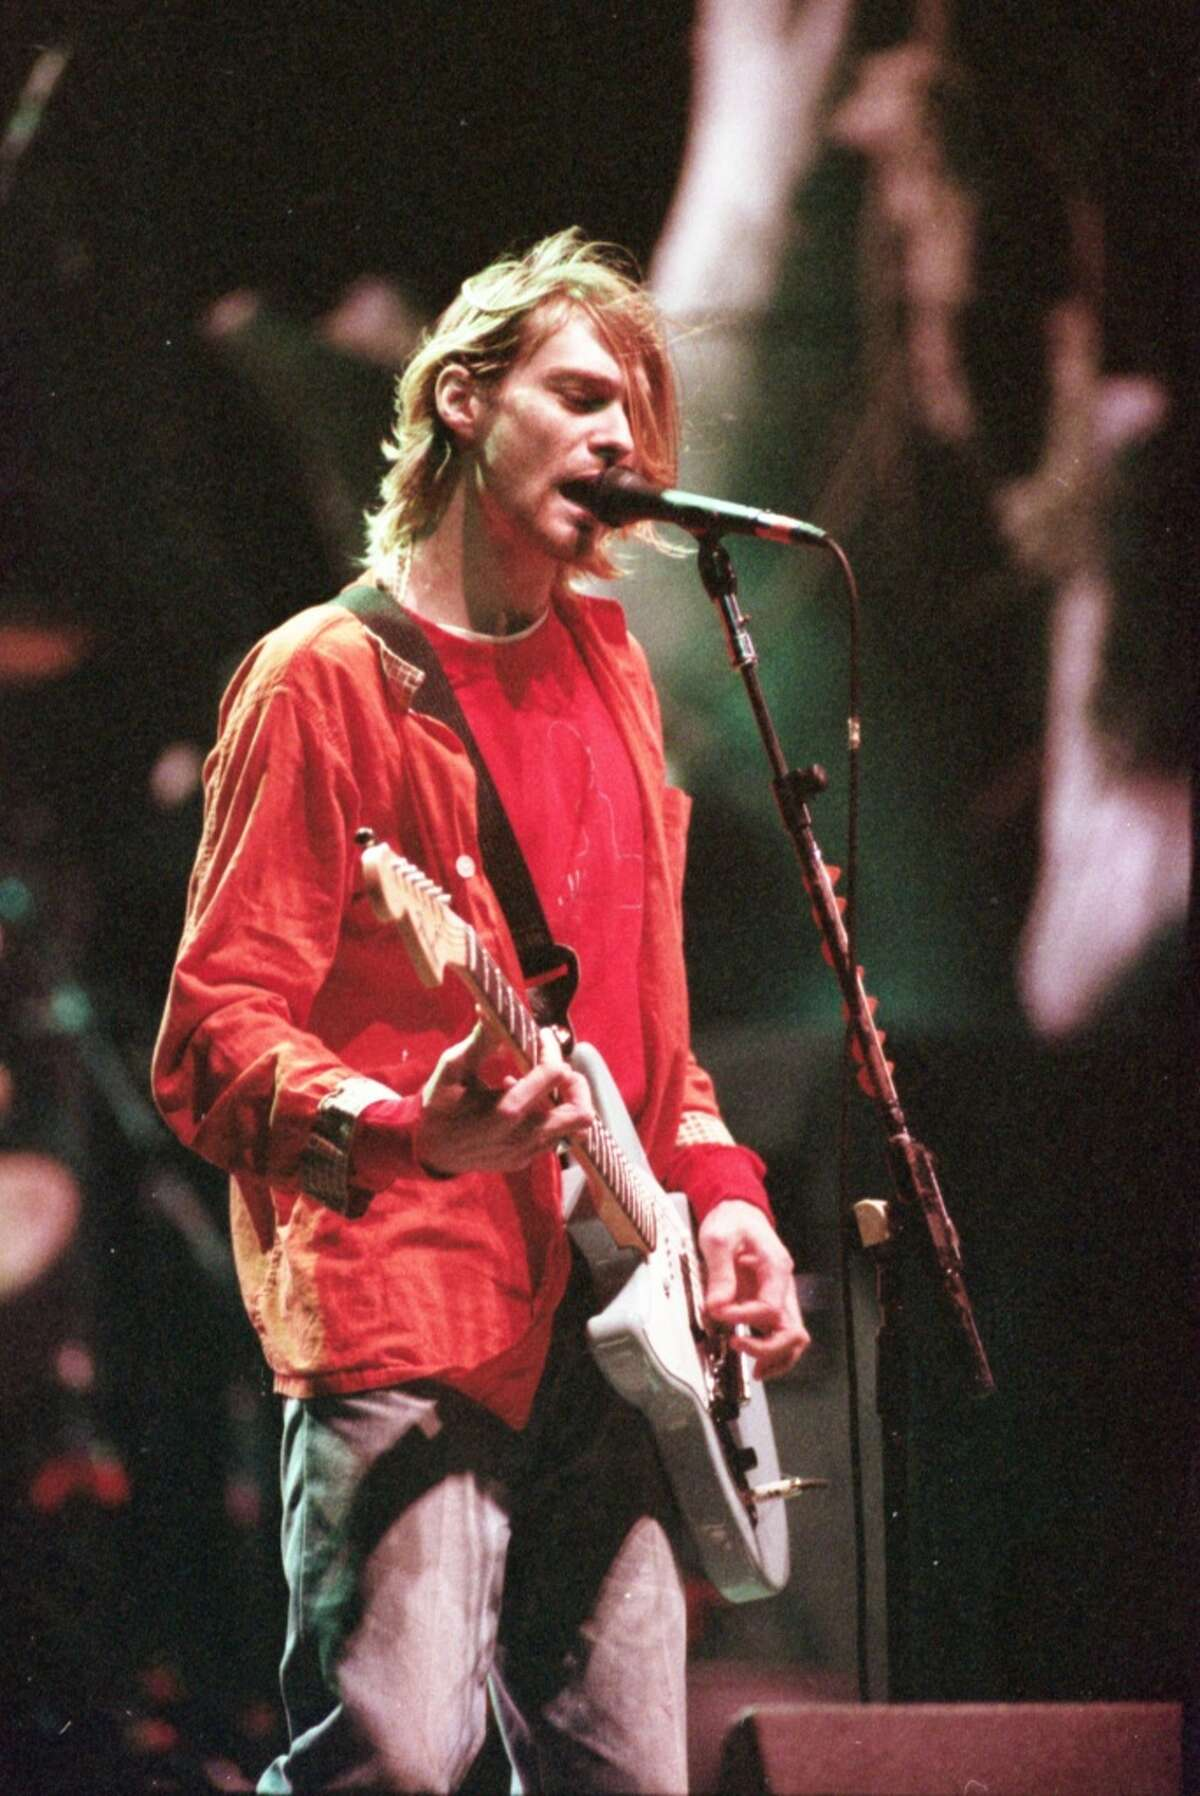 When Nirvana came to Houston... On Dec. 6, 1993, Kurt Cobain and Nirvana cruised through an 80-minute show Monday at the AstroArena.